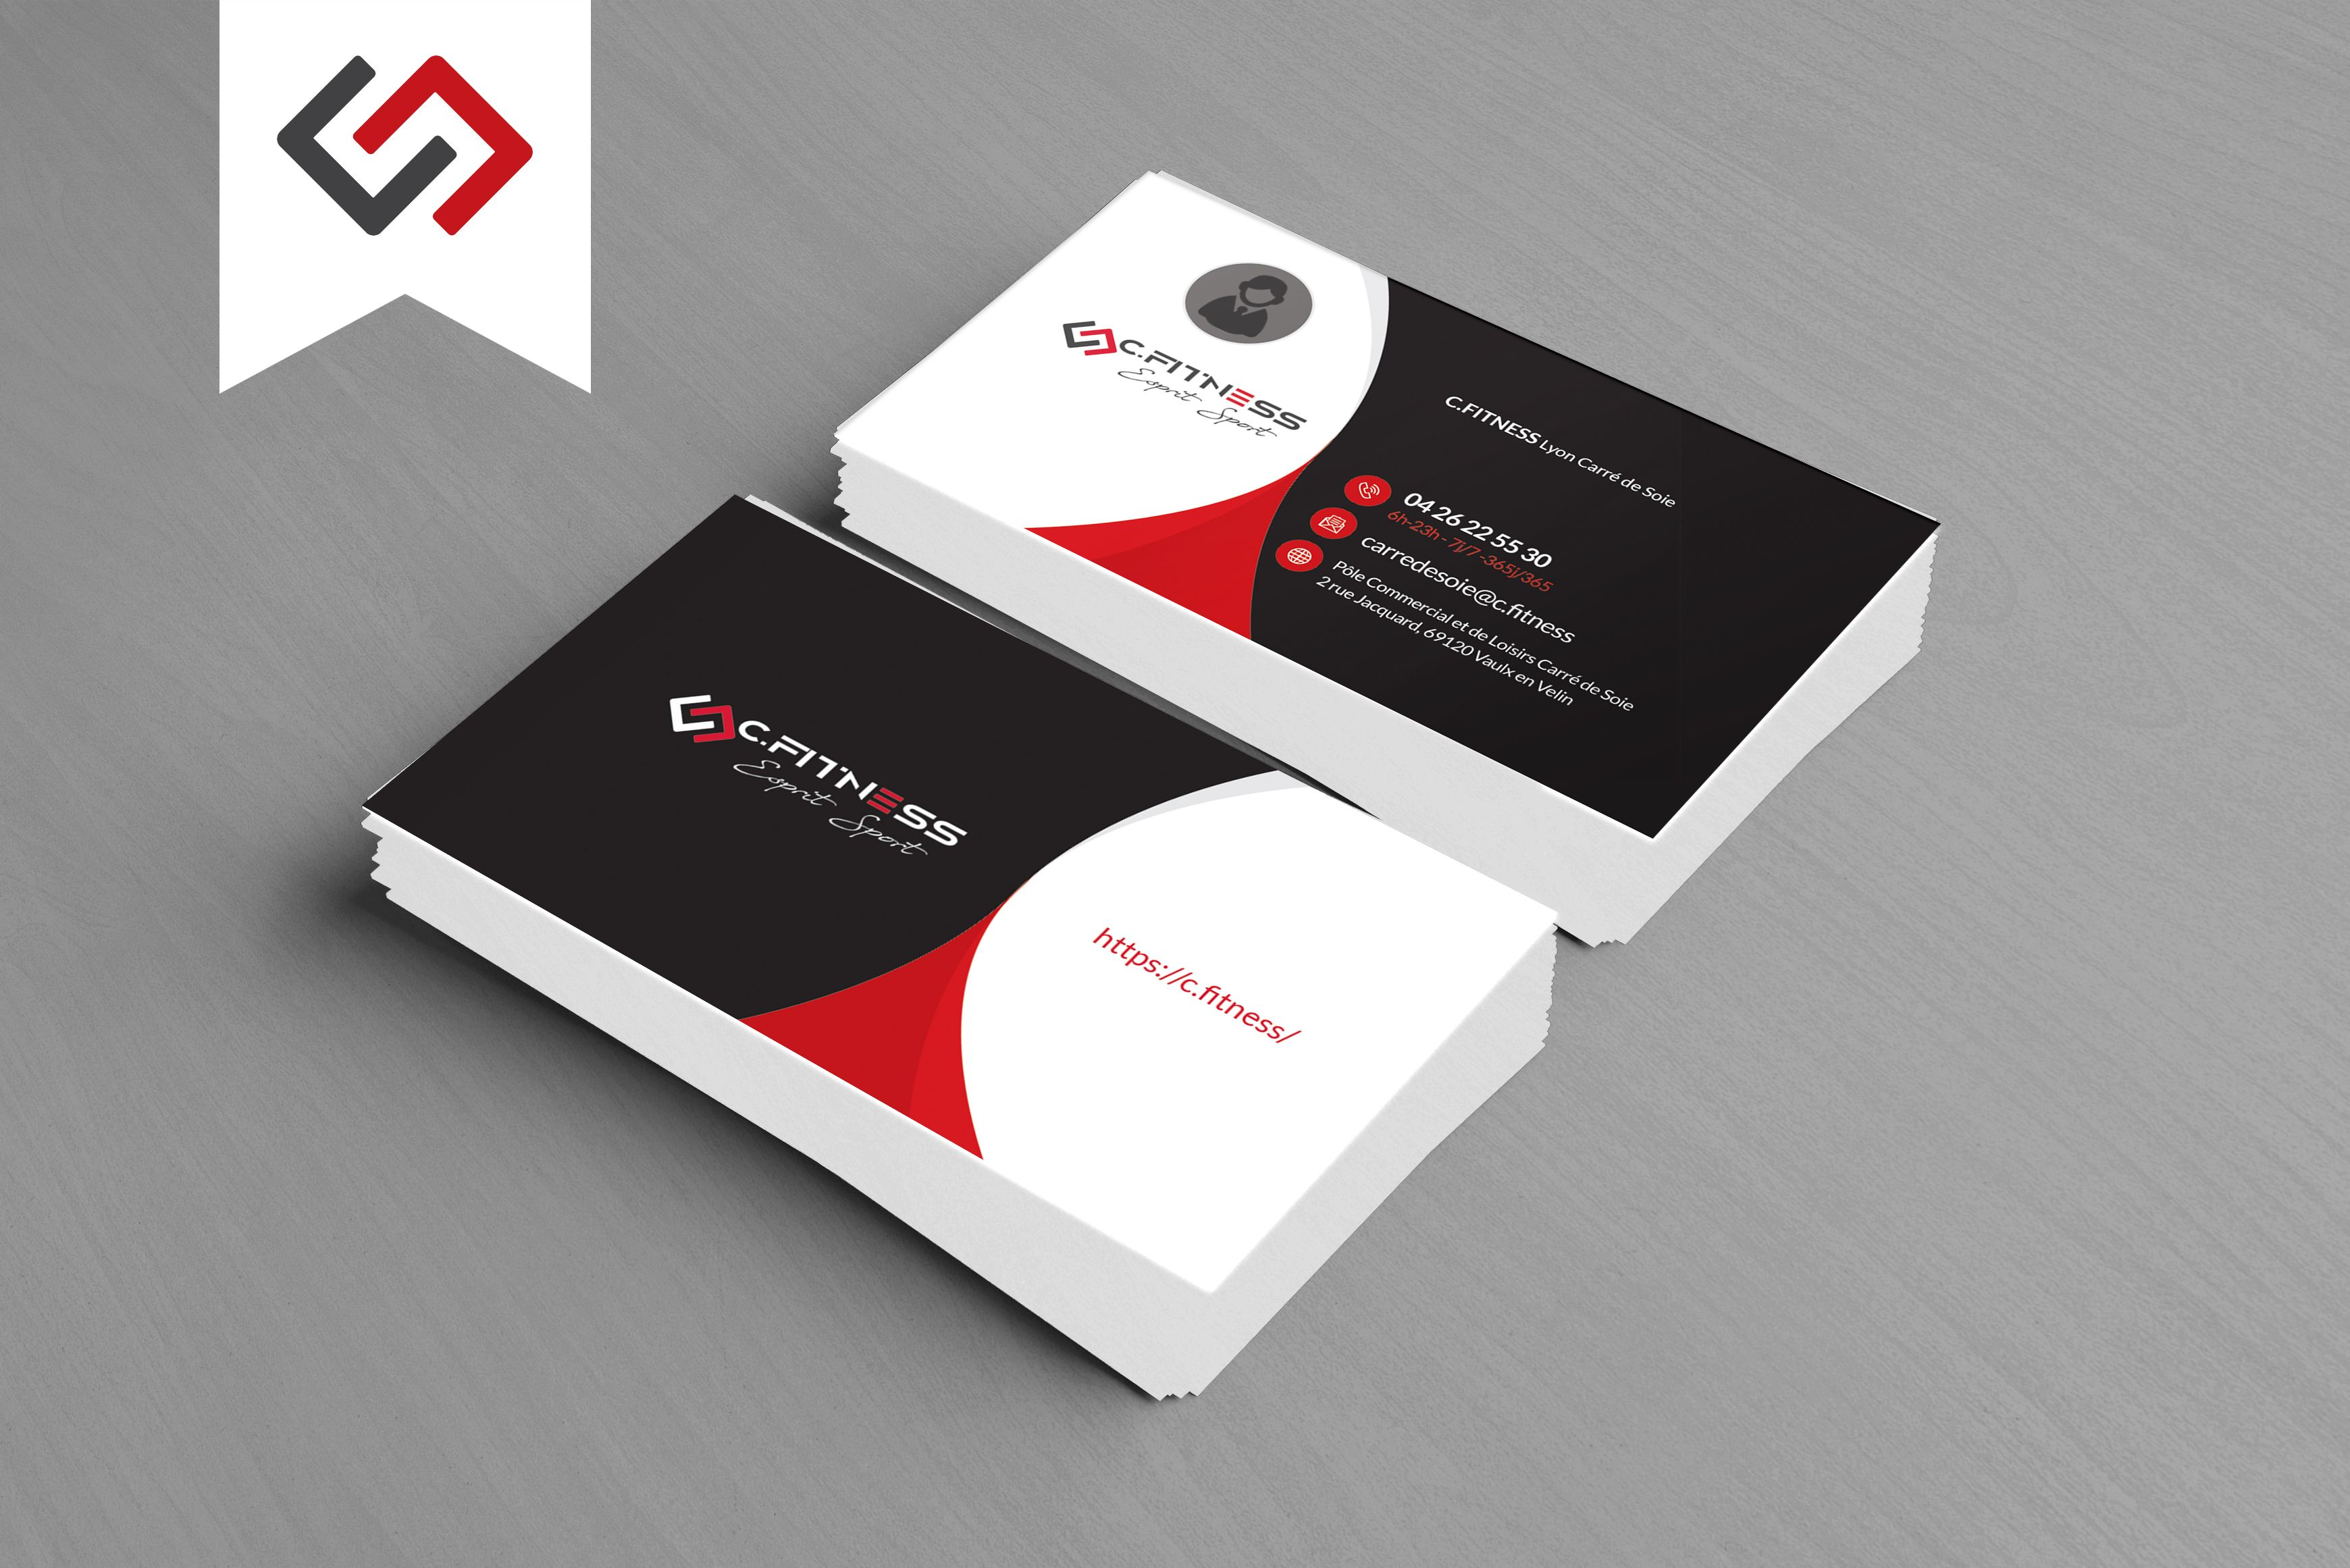 I Will Design Outstanding Business Card And Stationery Gigsdy Business Card Graphic Graphic Design Business Card Corporate Stationery